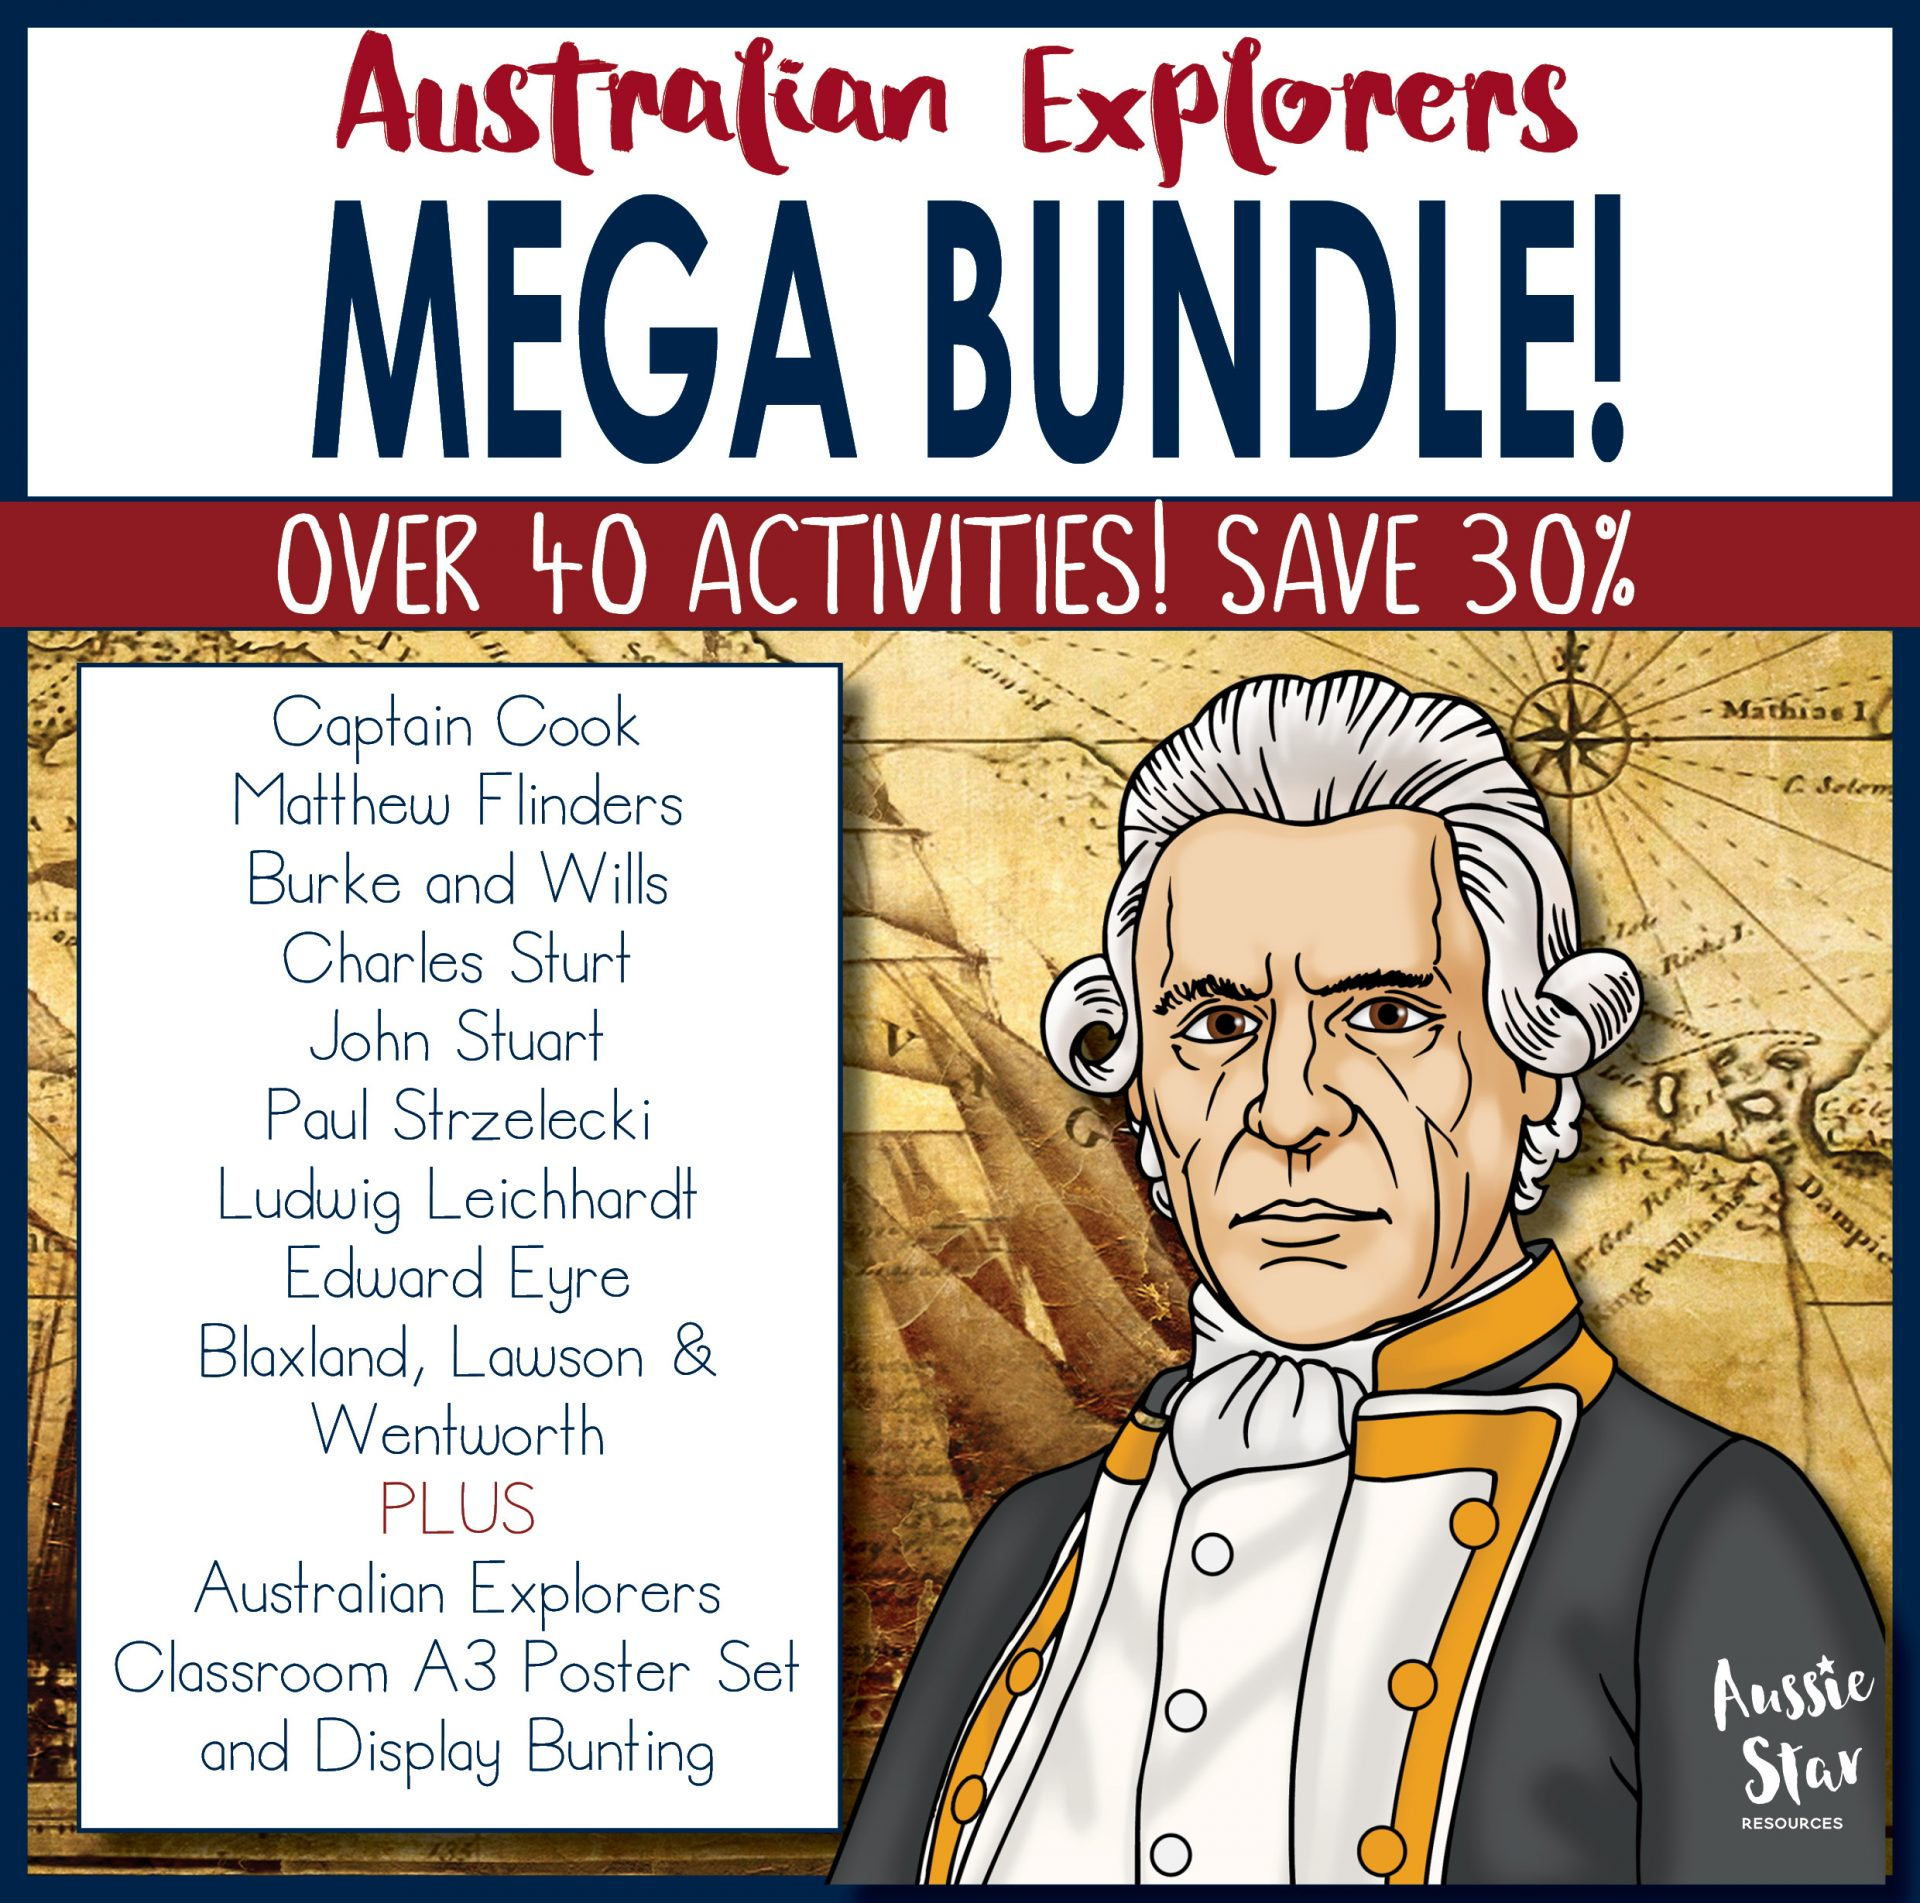 Australian Explorers Mega Bundle -Over 40 Activities, save 30%